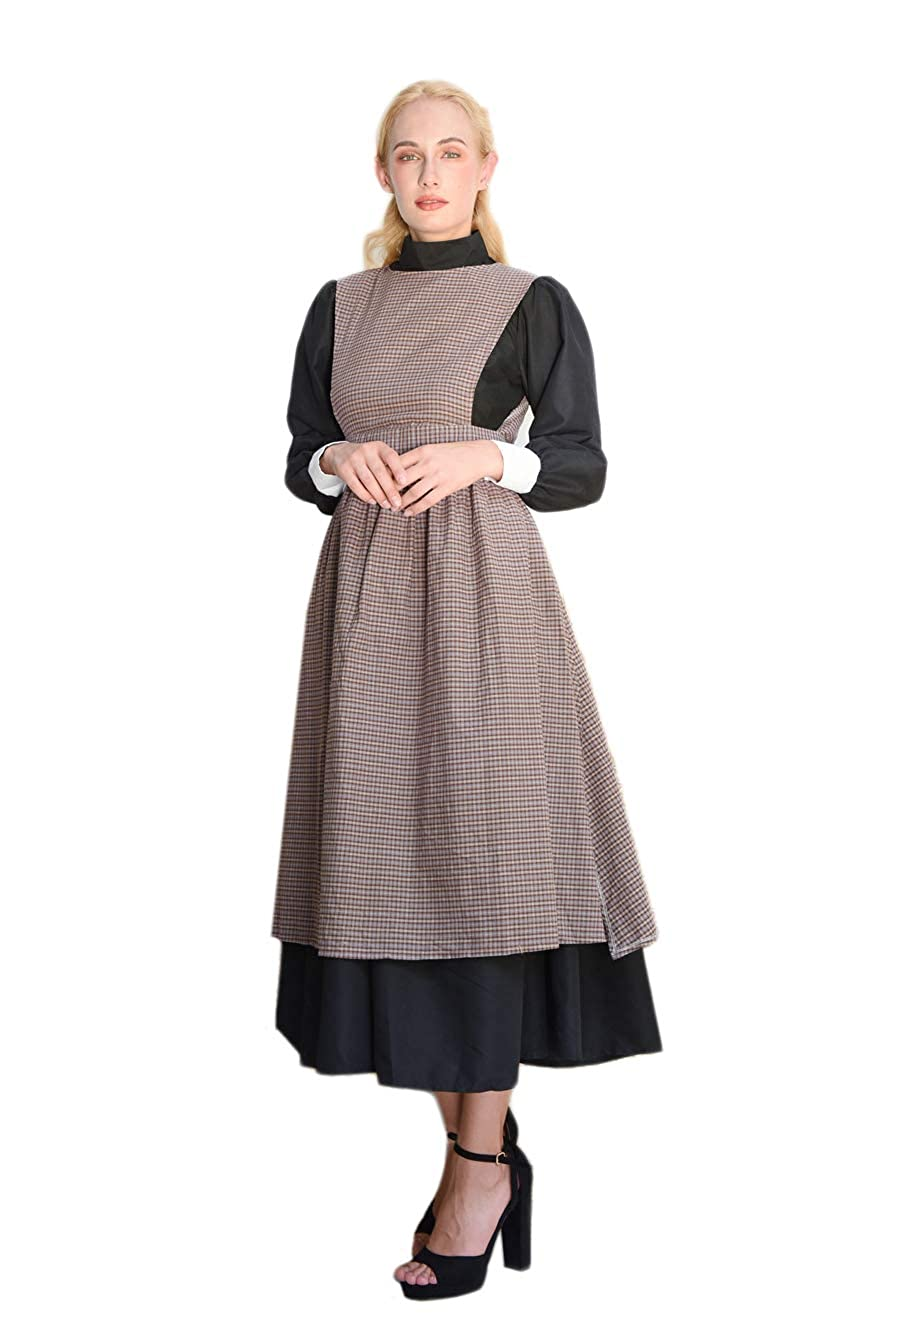 Victorian Dresses | Victorian Ballgowns | Victorian Clothing ROLECOS Womens Pioneer Costume Adult Black Pioneer Dress Prairie Colonial Dress Outfit $44.99 AT vintagedancer.com